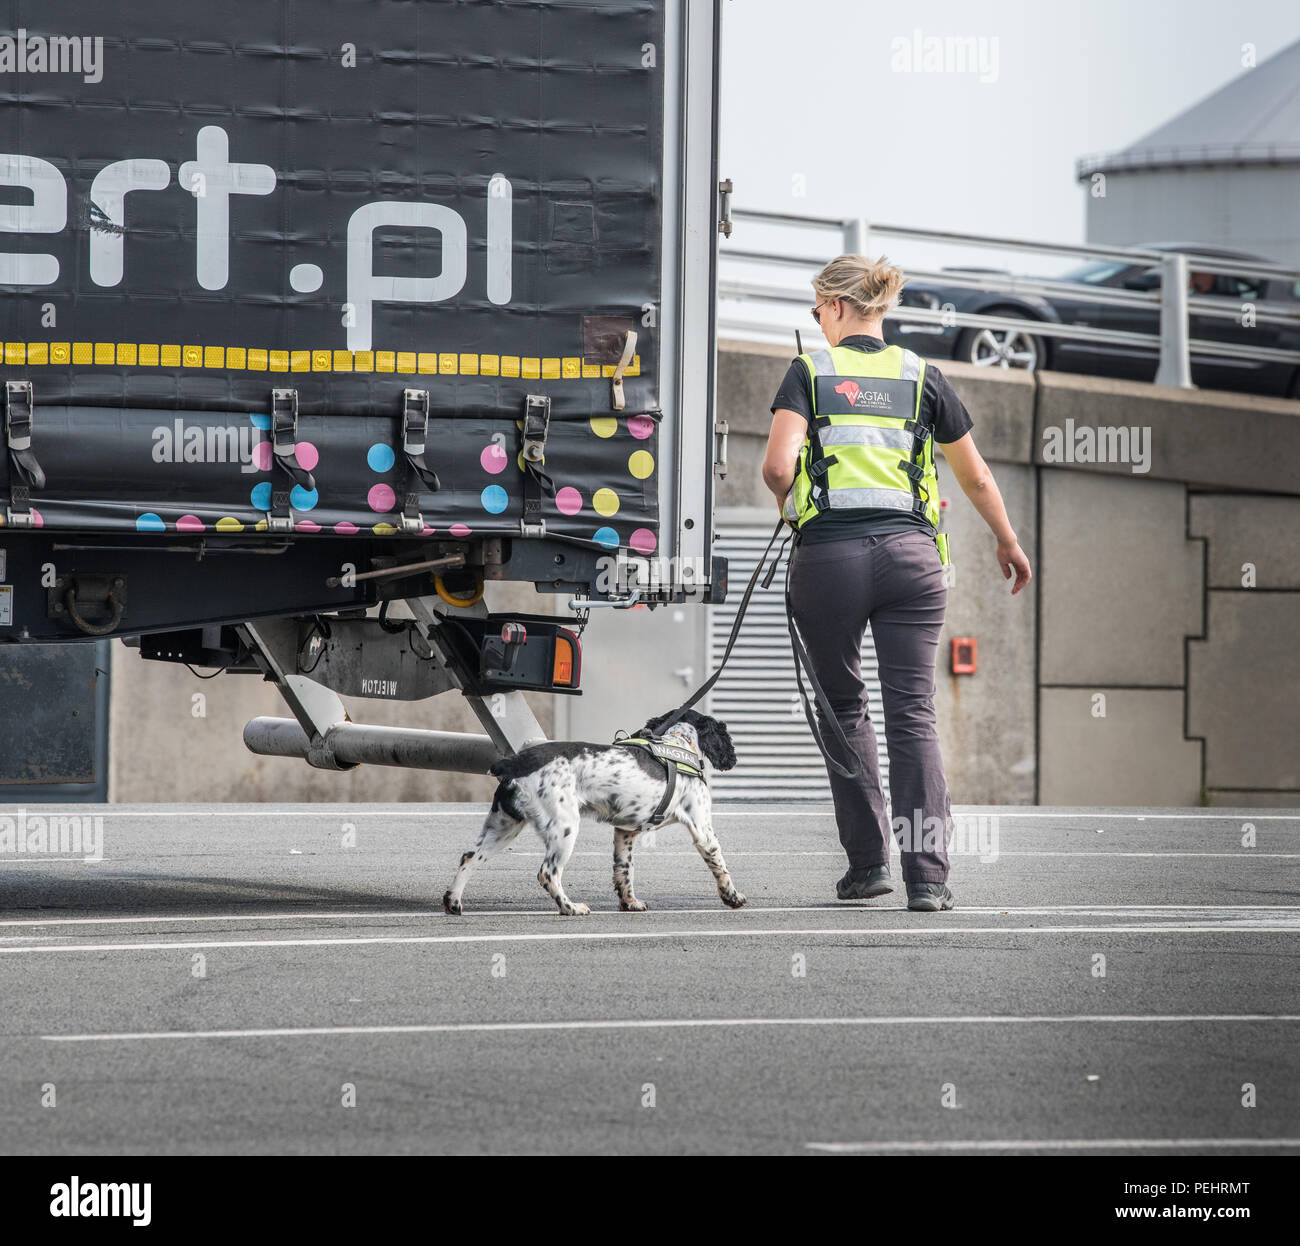 Sniffer dog and handler examine the rear of a lorry at the port of Calais, France, for illegal immigrants. - Stock Image